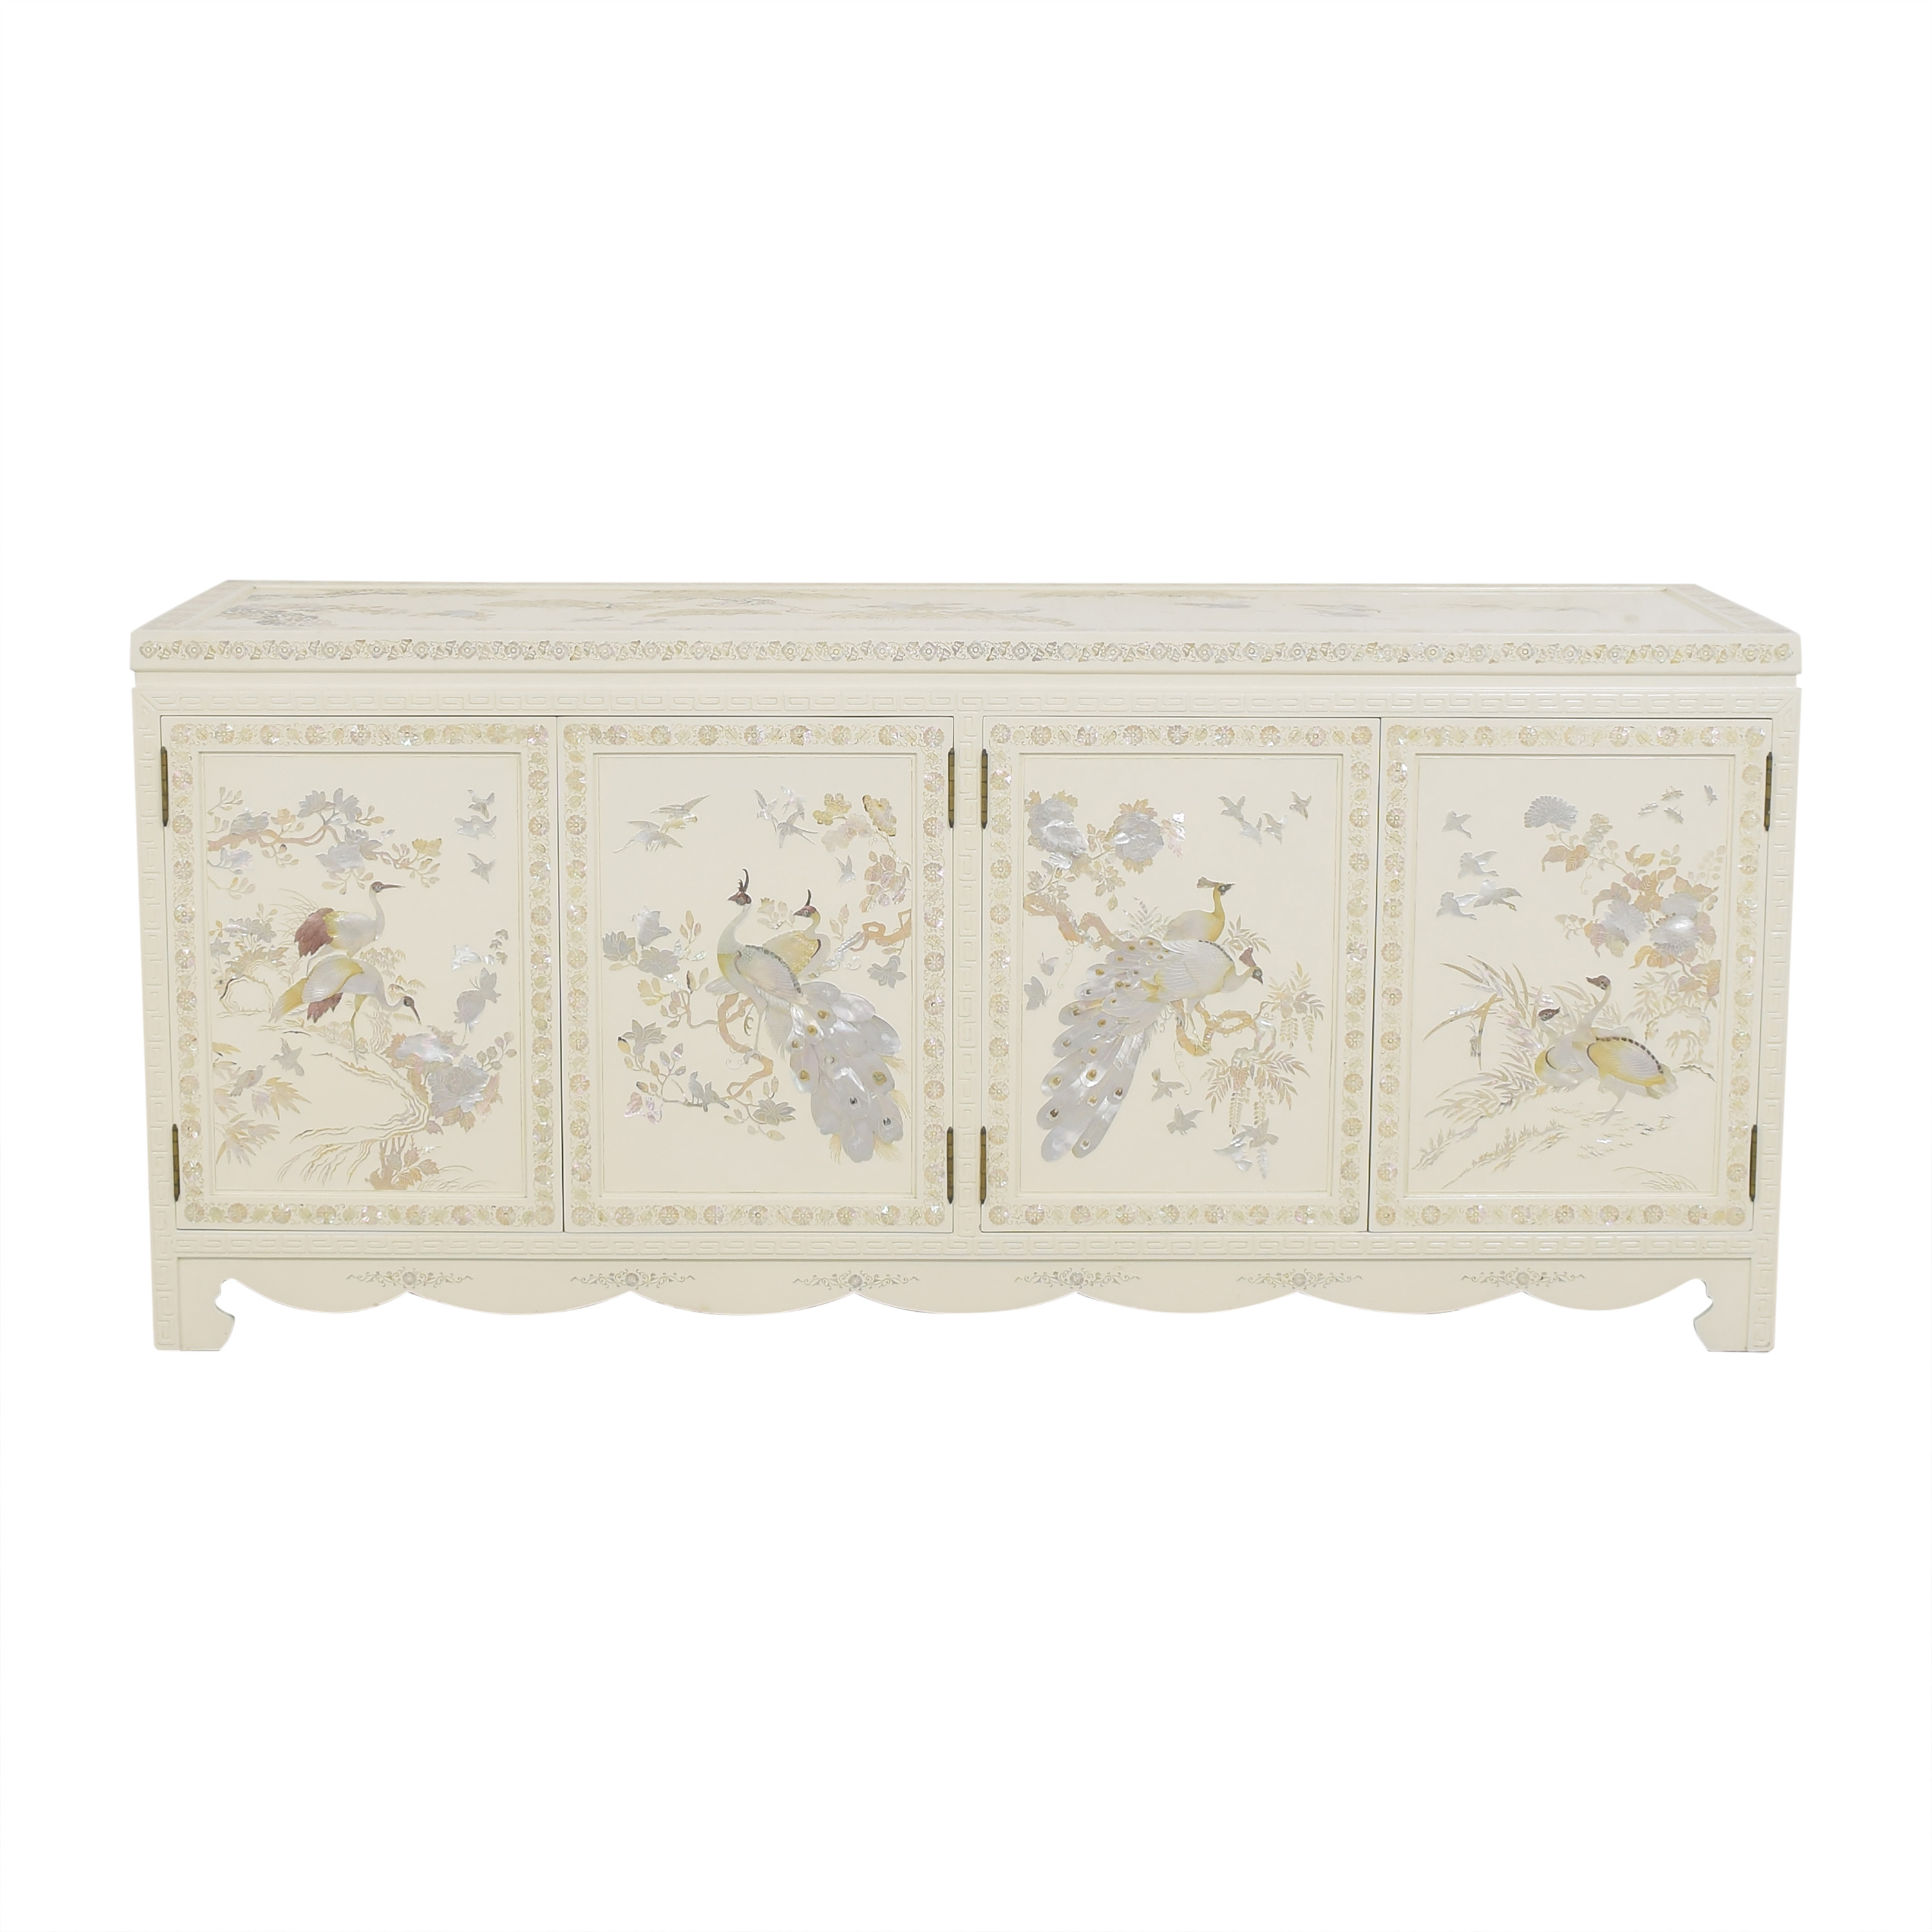 Decorative Four Door Sideboard Cabinets & Sideboards